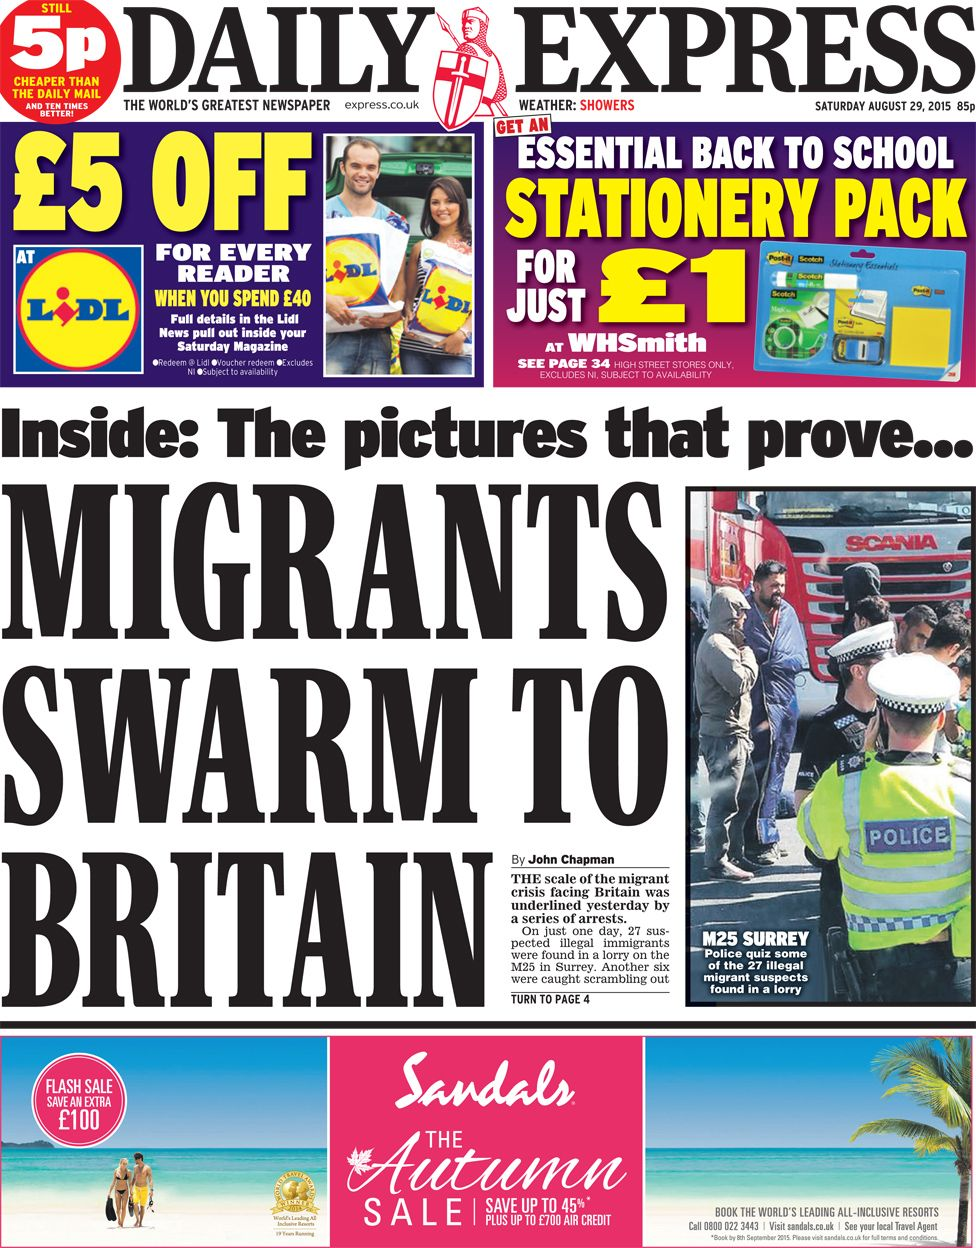 Newspaper Headlines Migration Facebook And Lords Reform